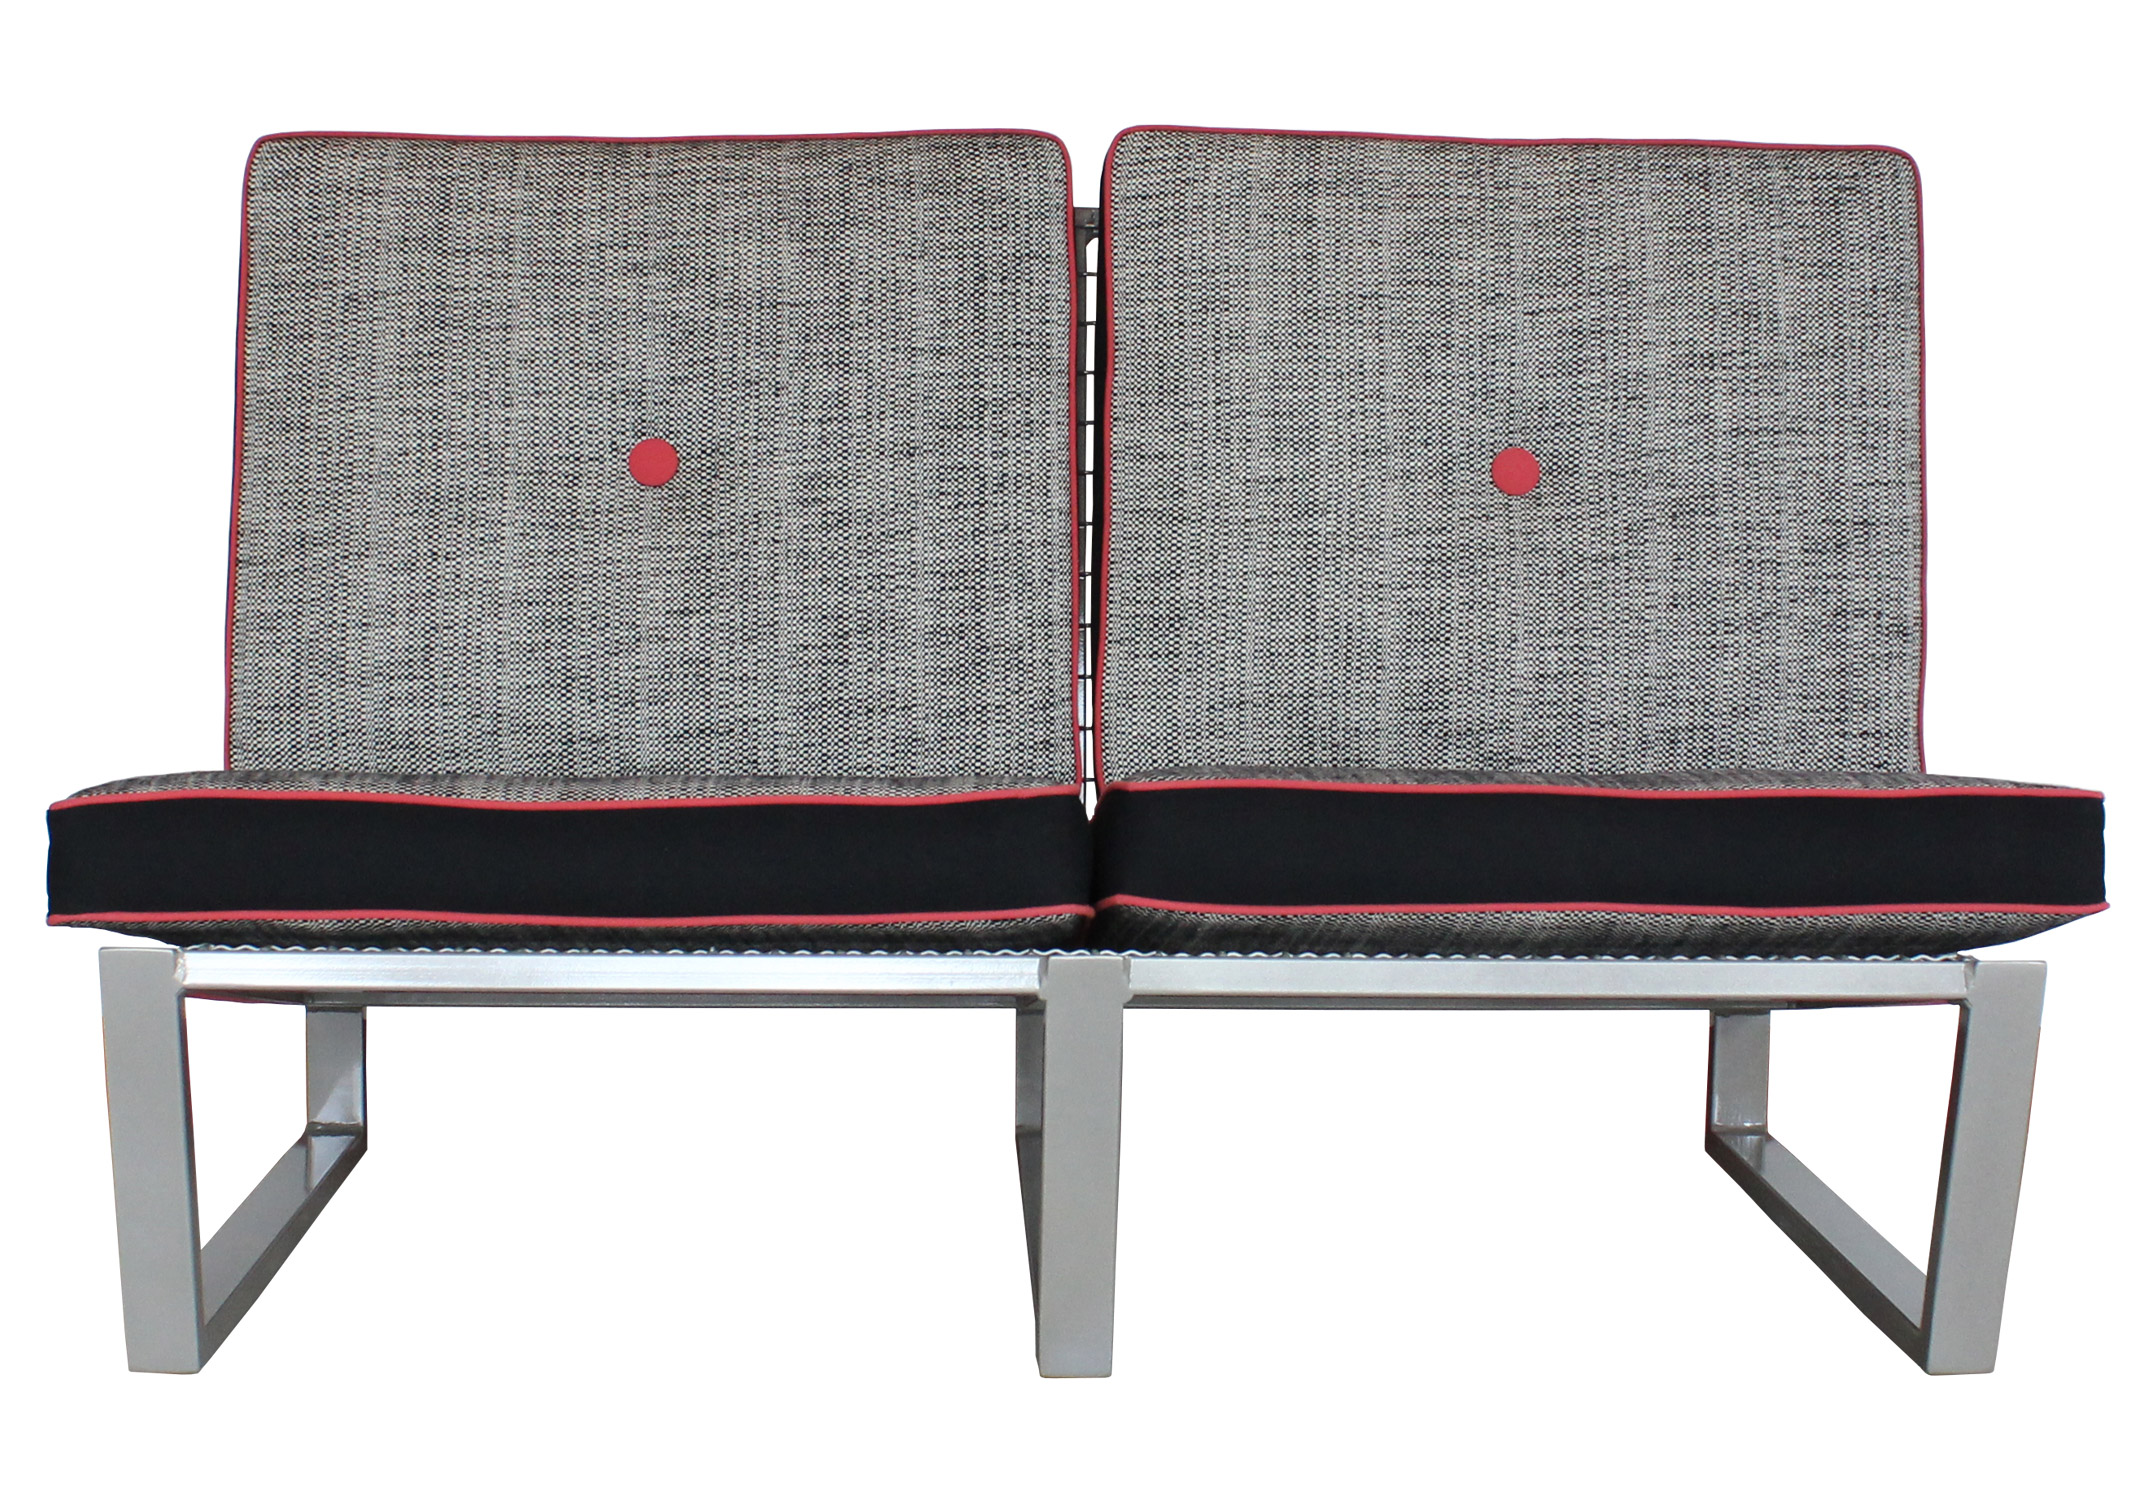 Del Calle loveseat from the front